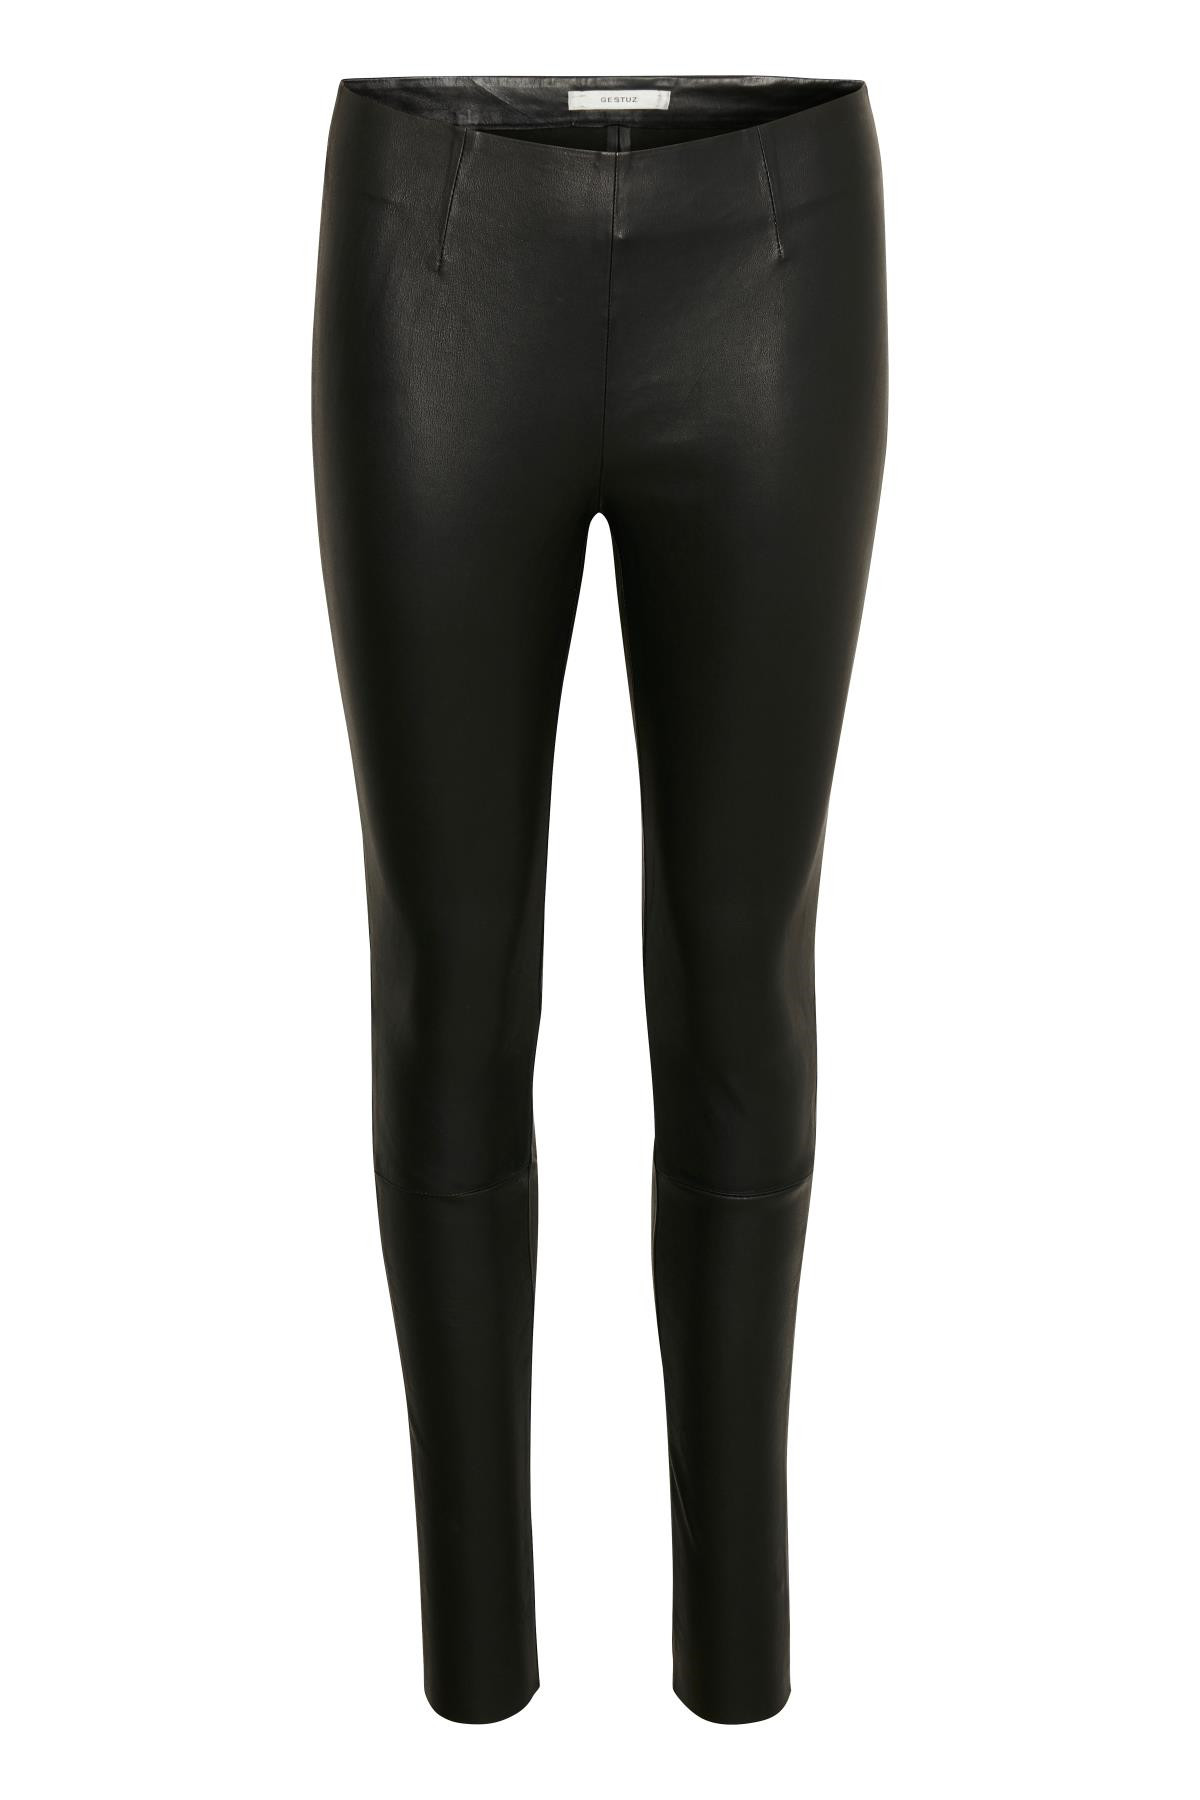 Image of   GESTUZ SASHA LEGGINGS (Black 90001, 34)